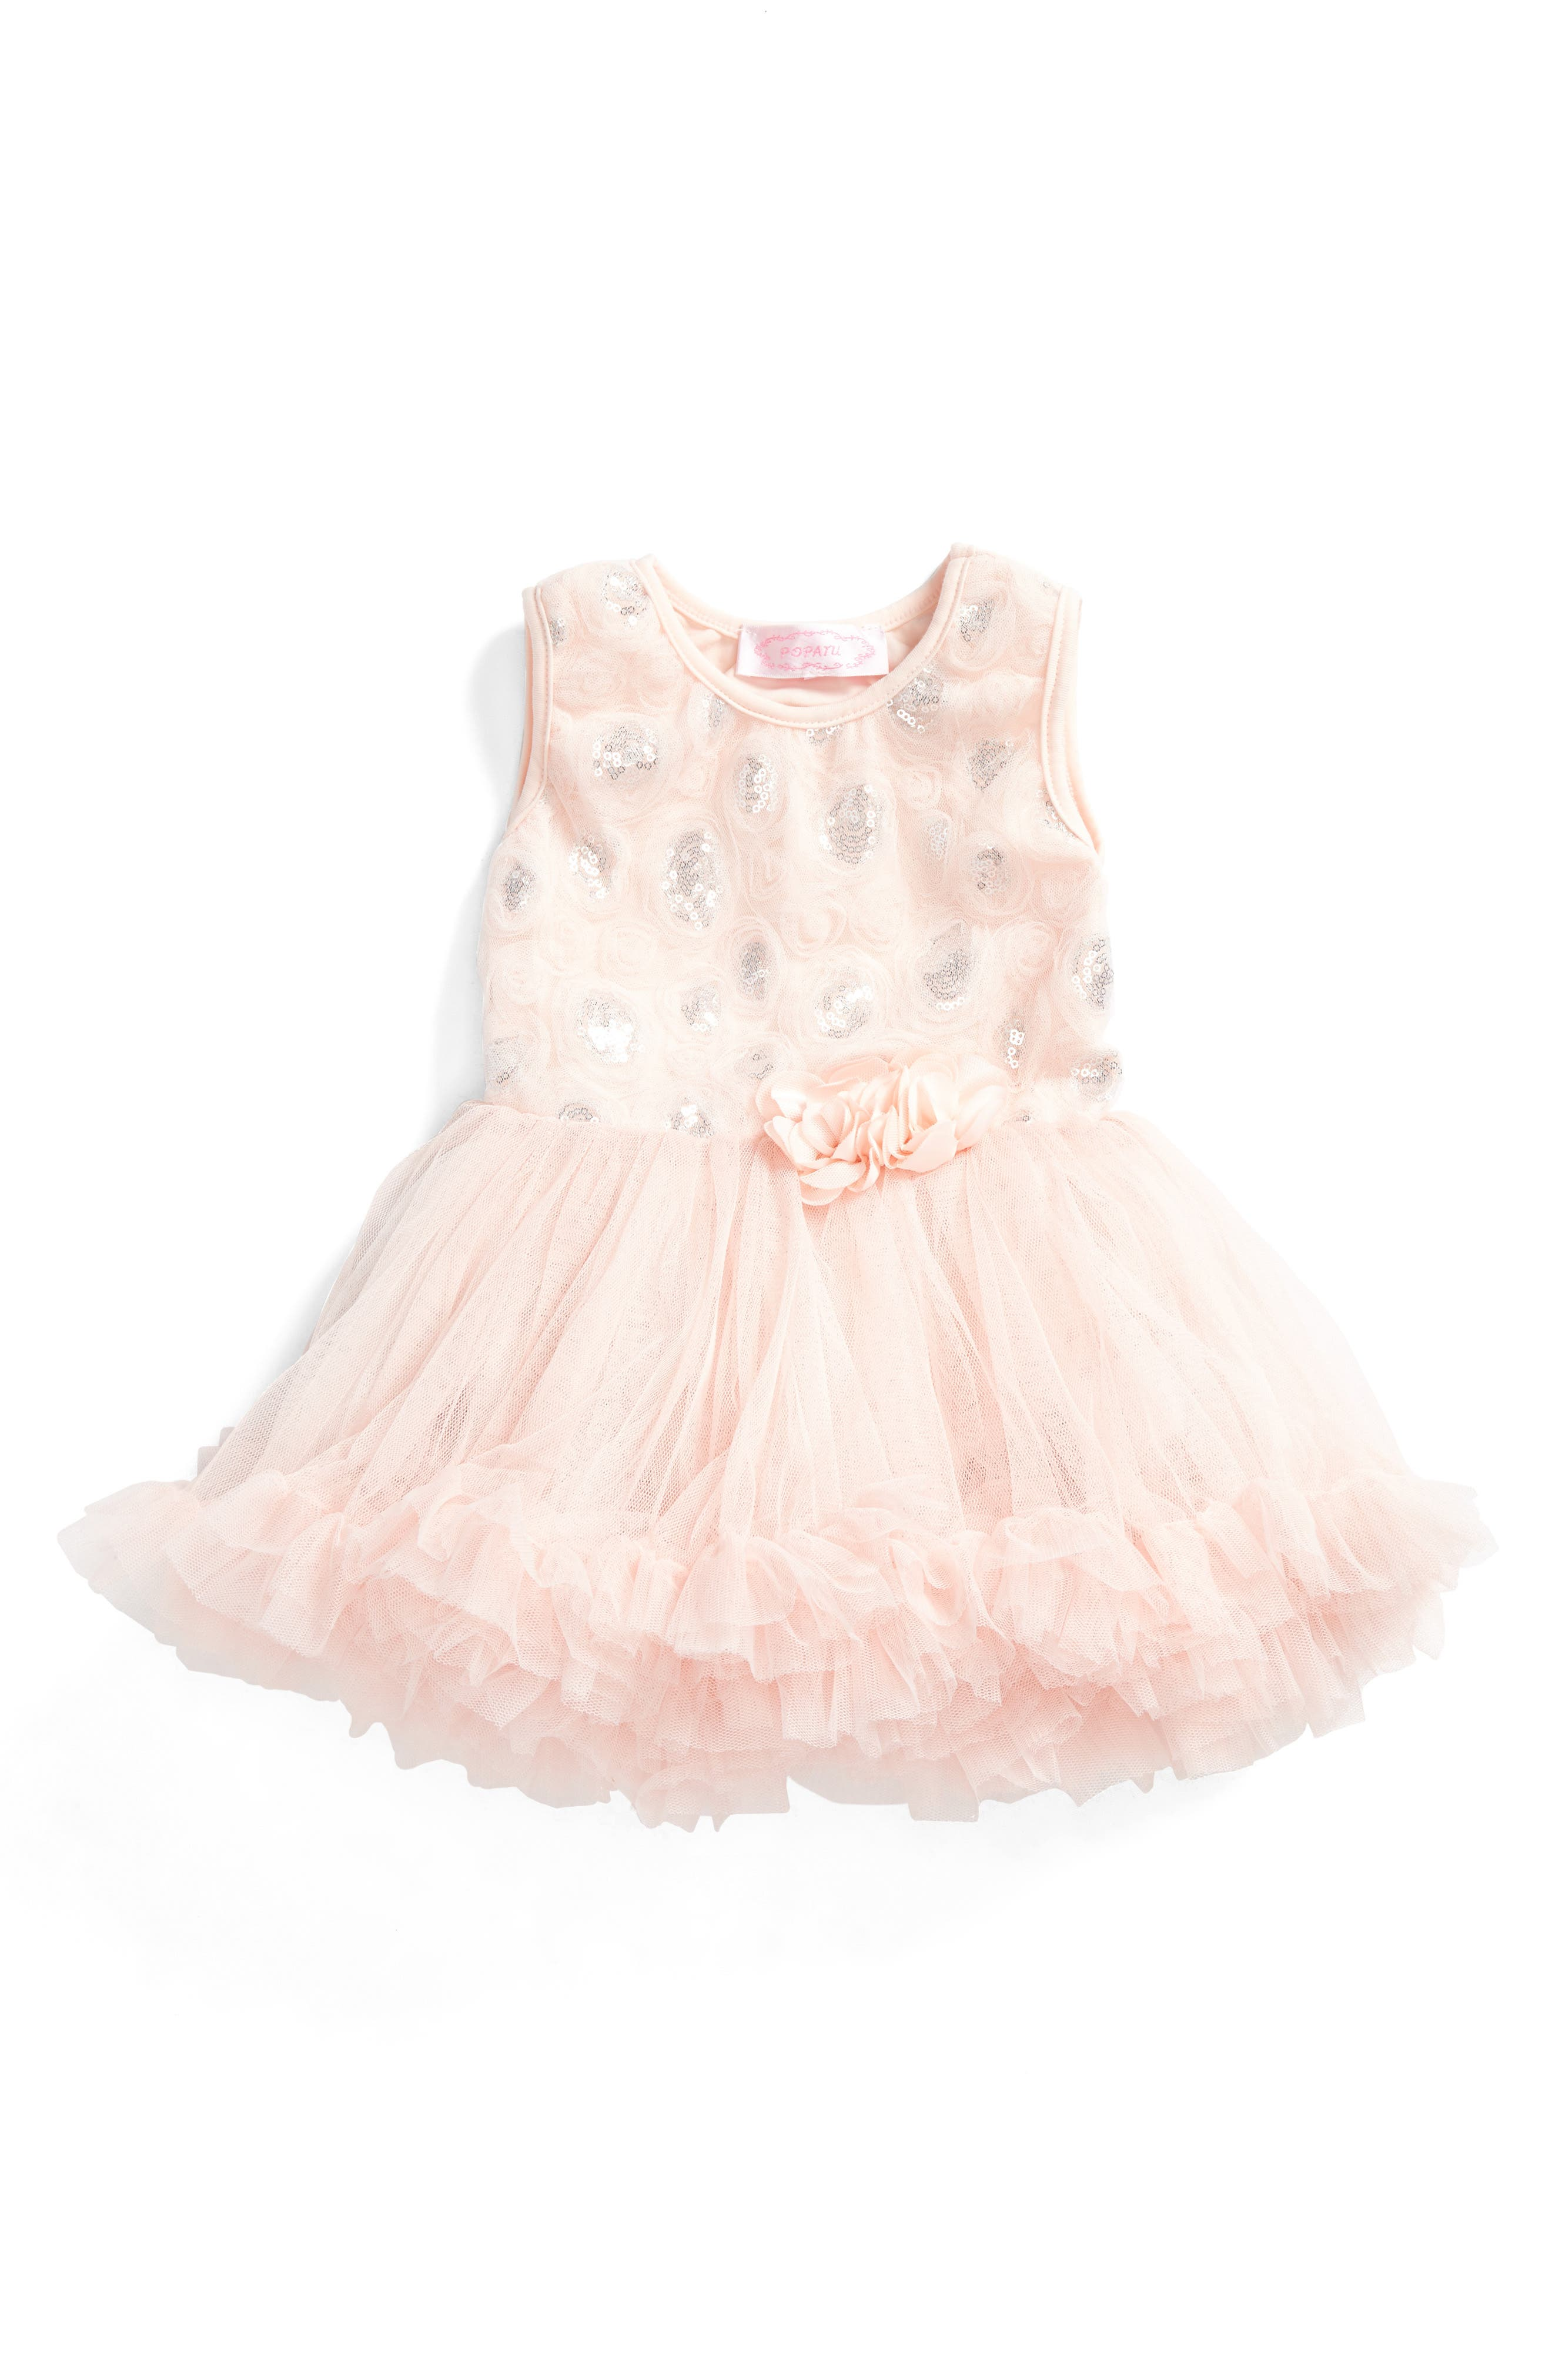 Rosette Sequin Dress,                         Main,                         color, Dusty Pink